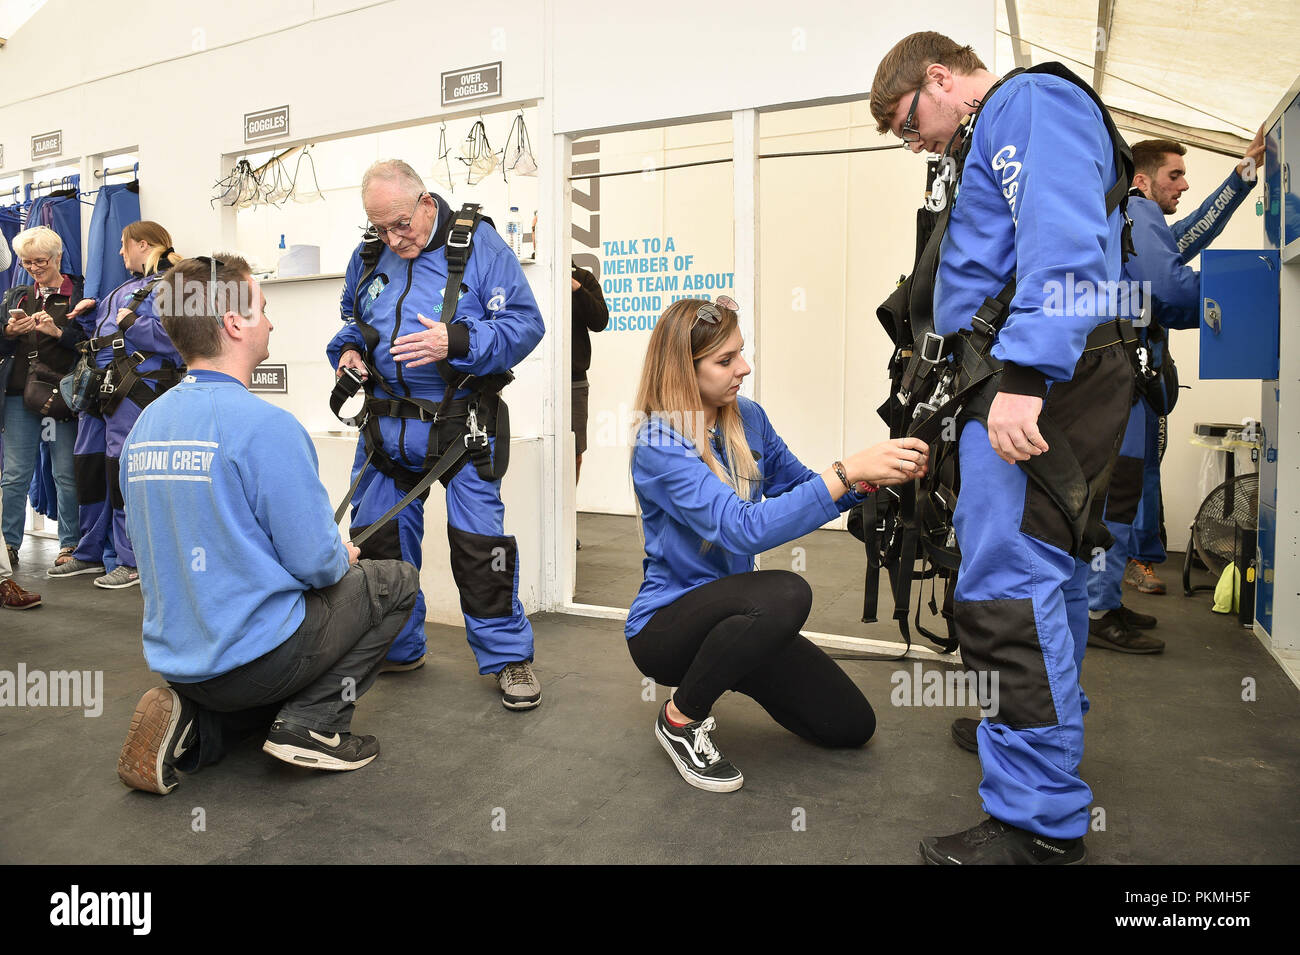 d day veteran harry read 94 is helped into his skydiving harness at old sarum airfield salisbury wiltshire where he is taking part in his first high level skydive since he parachuted into normandy on 6 june 1944 PKMH5F d day veteran harry read, 94, is helped into his skydiving harness